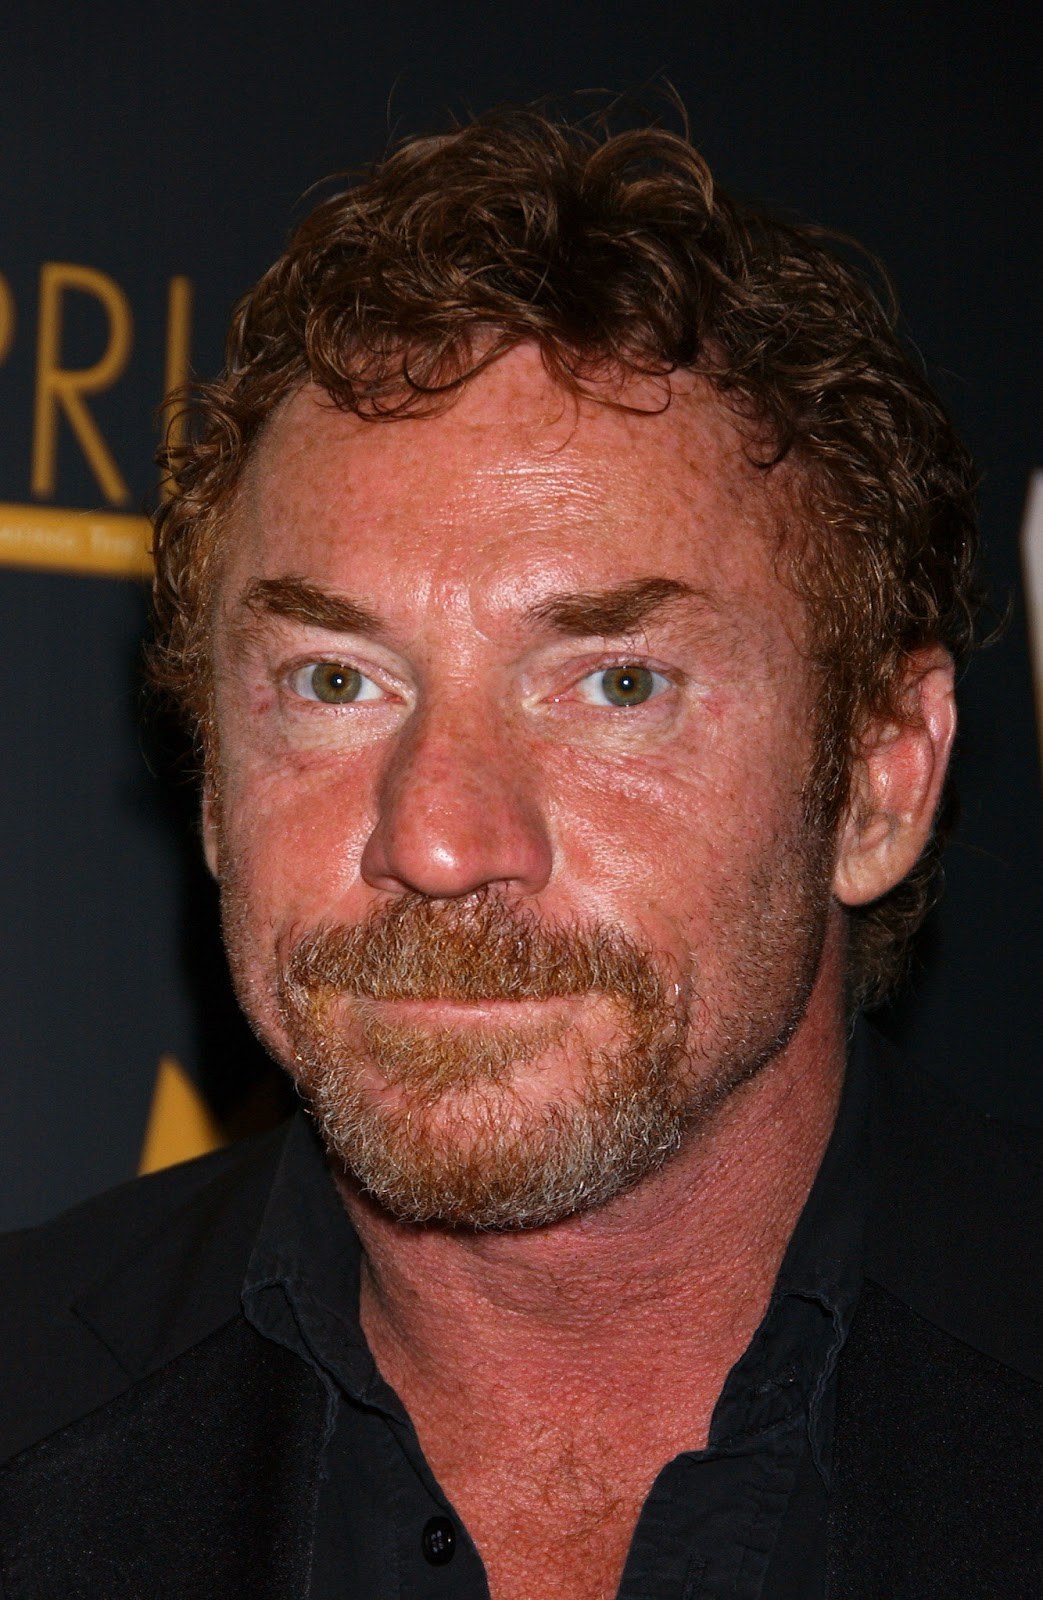 Danny Bonaduce | All Actors Photo Gallery